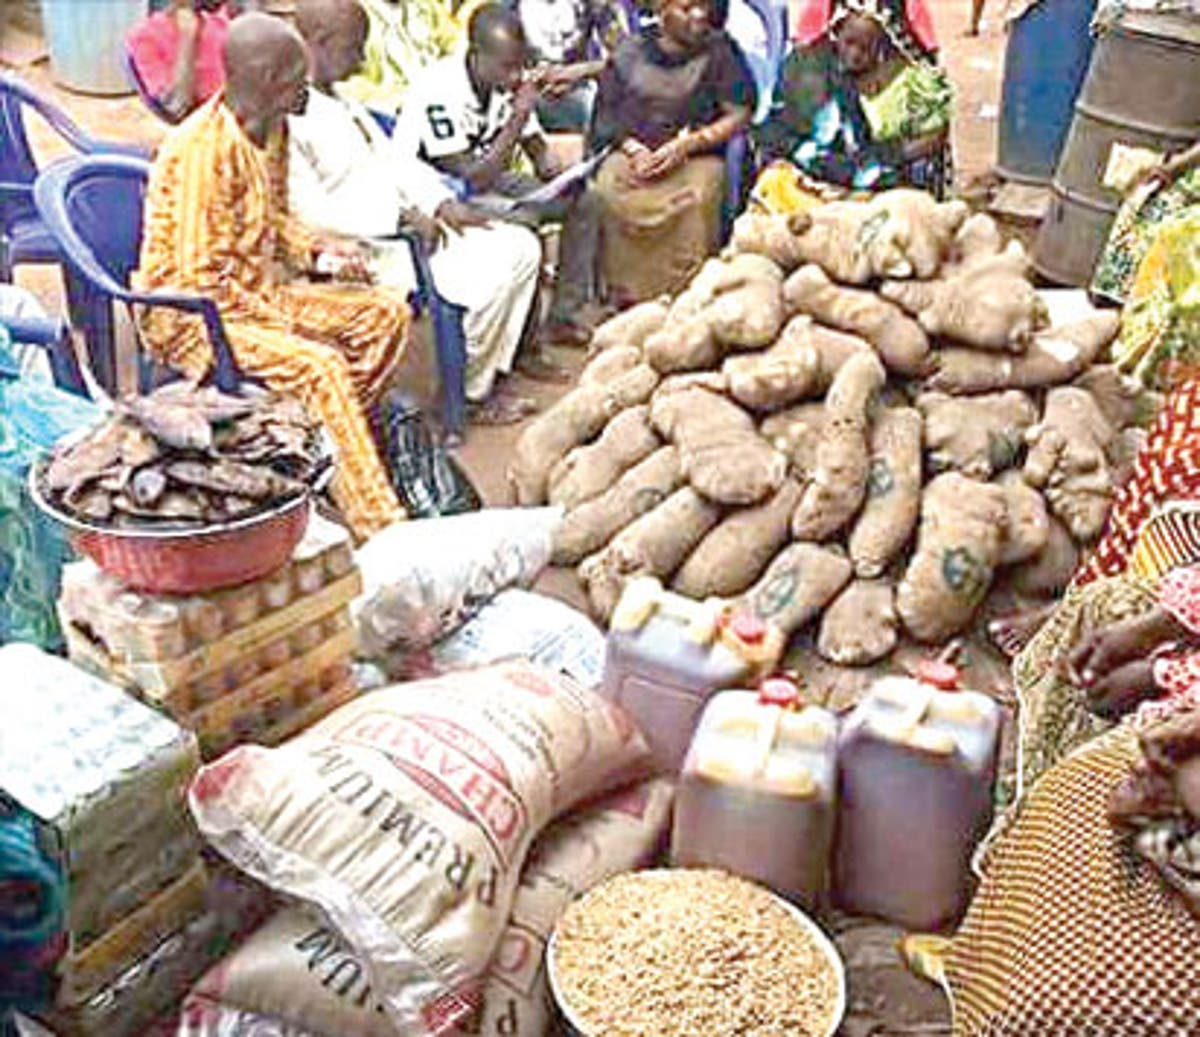 Much ado about bride price - Vanguard News